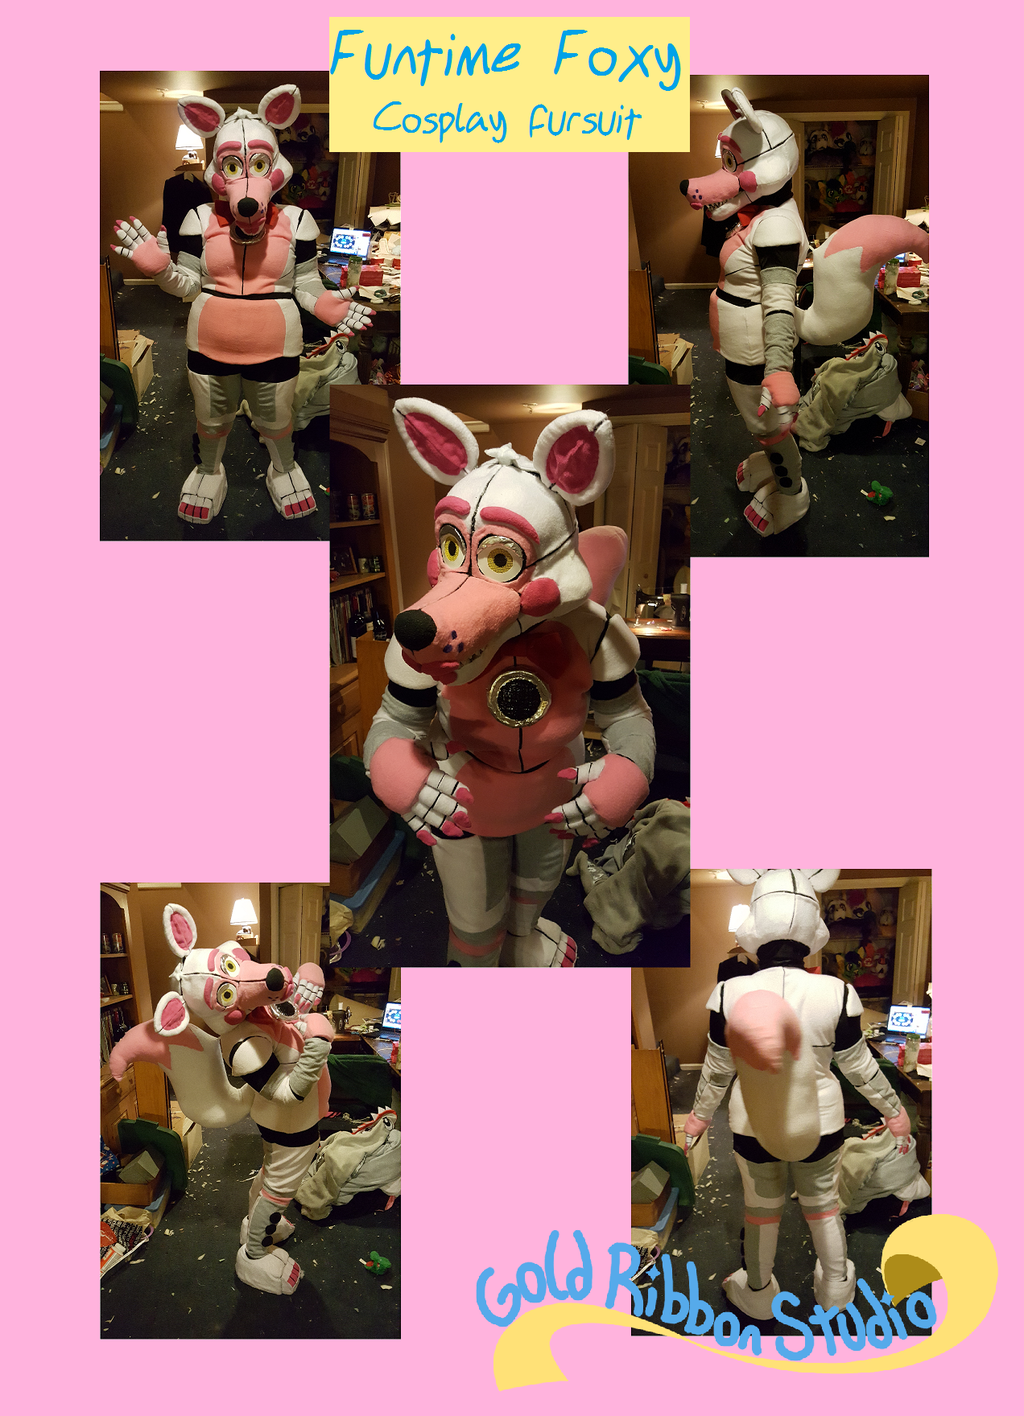 Featured image: Funtime Foxy Fursuit